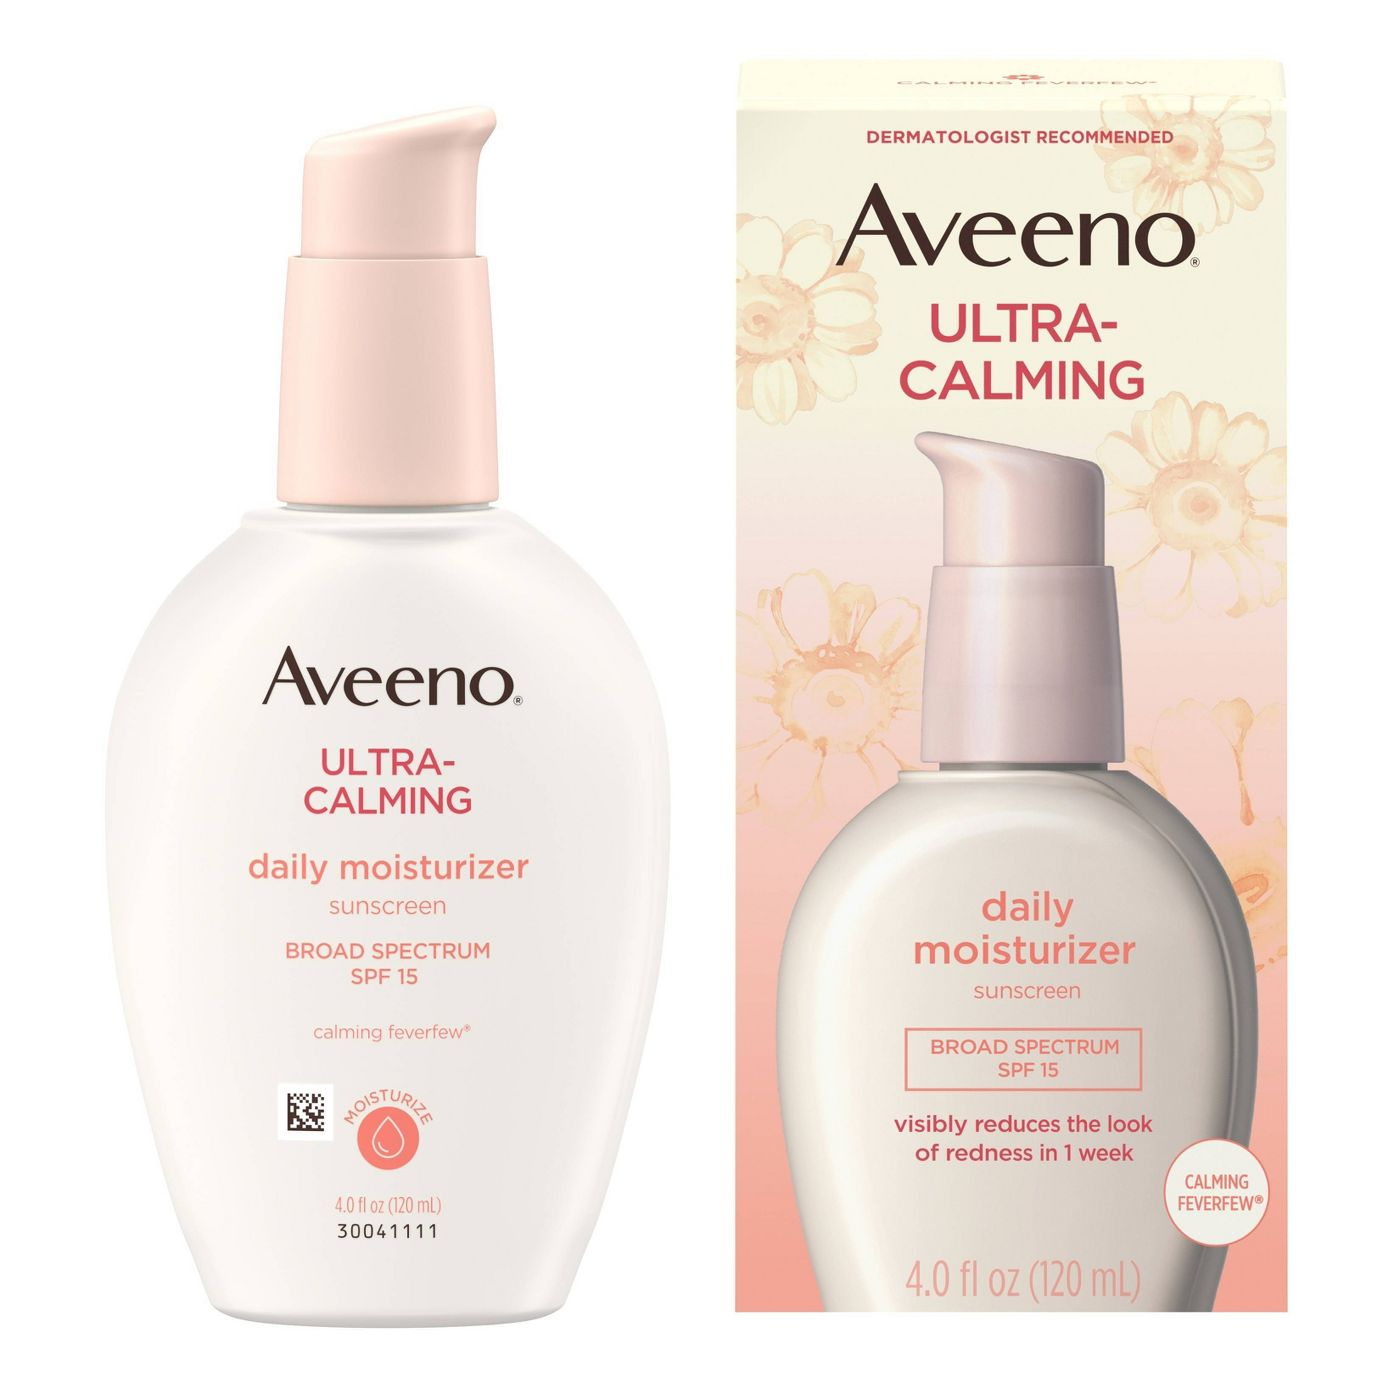 Aveeno Ultra-Calming Daily Moisturizer Sunscreen Spf 15